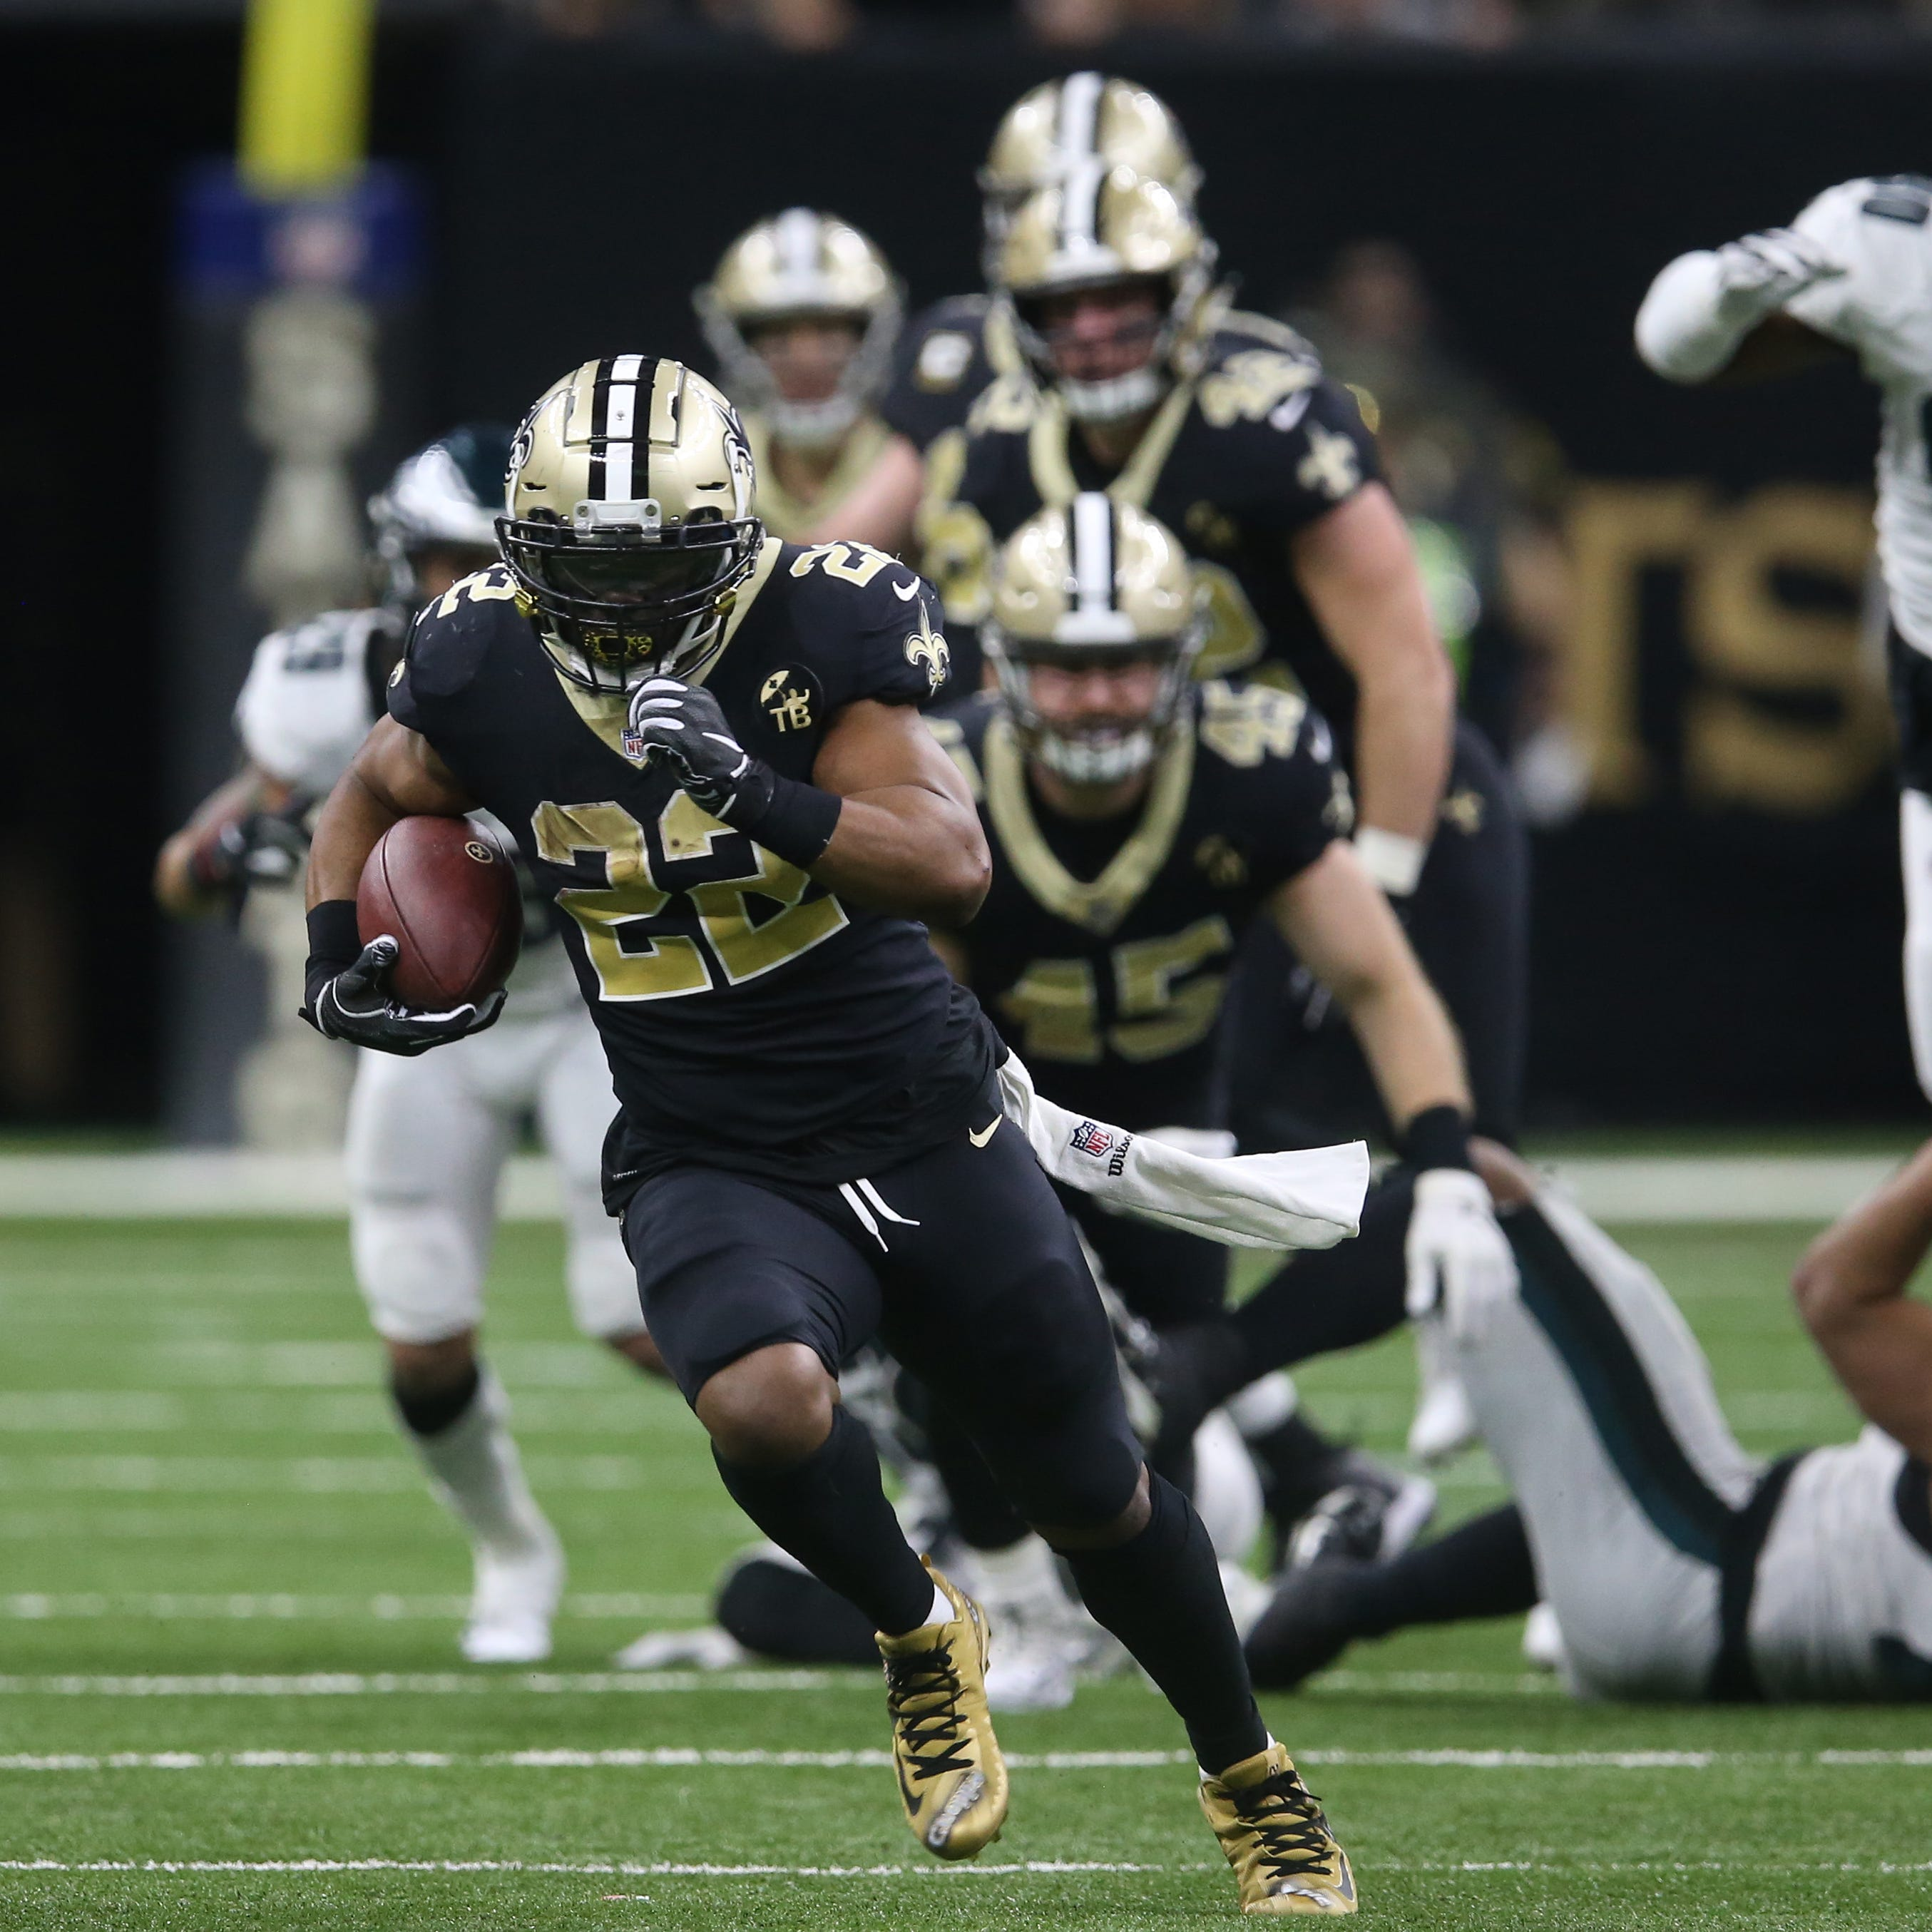 NFL Playoffs: New Orleans Saints rally past Philadelphia Eagles, will host NFC title game